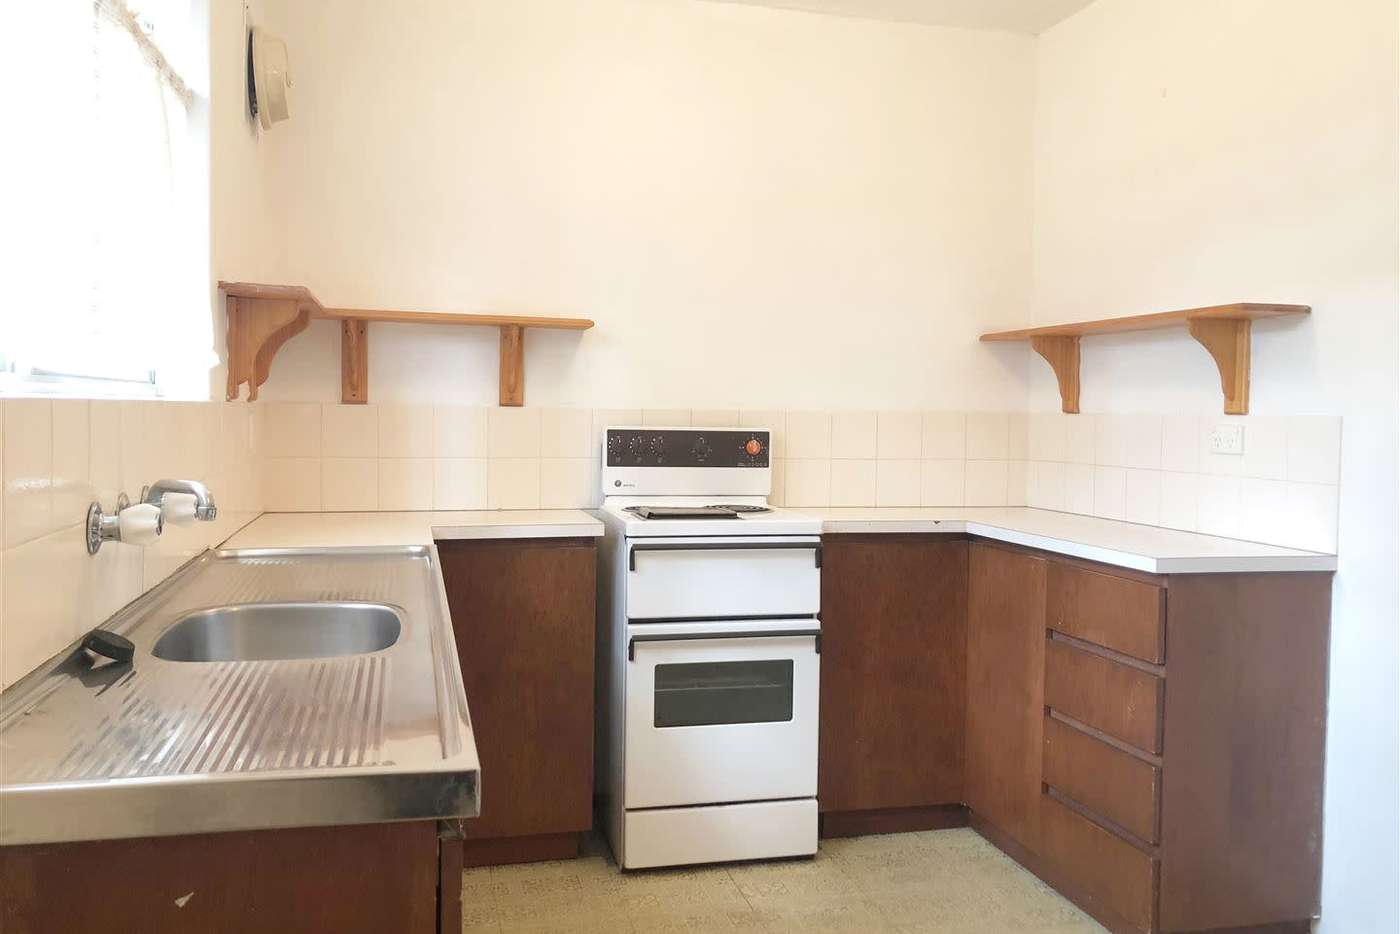 Main view of Homely apartment listing, 11/4 Pearson Place, Churchlands WA 6018